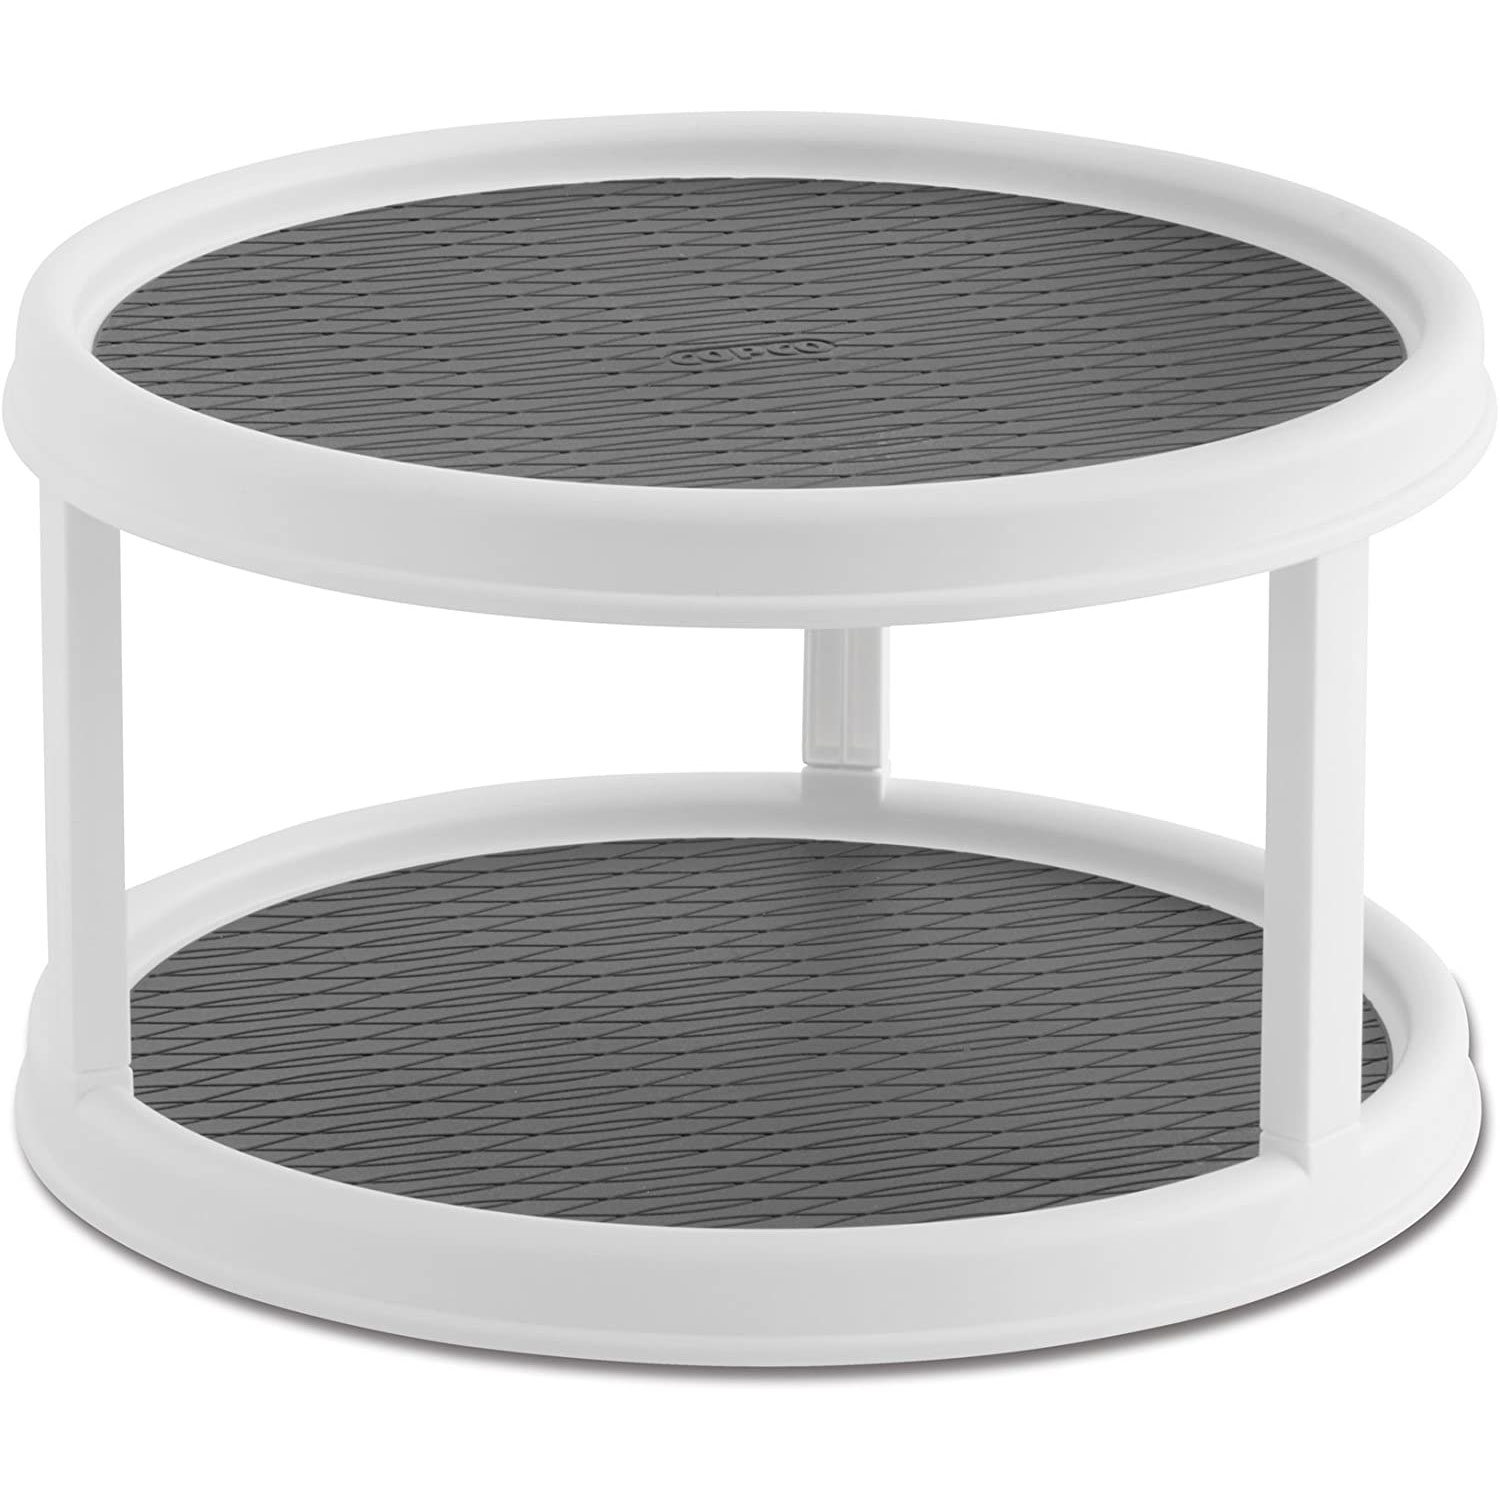 copco non-skid 2 tier pantry cabinet lazy susan turntable white gray